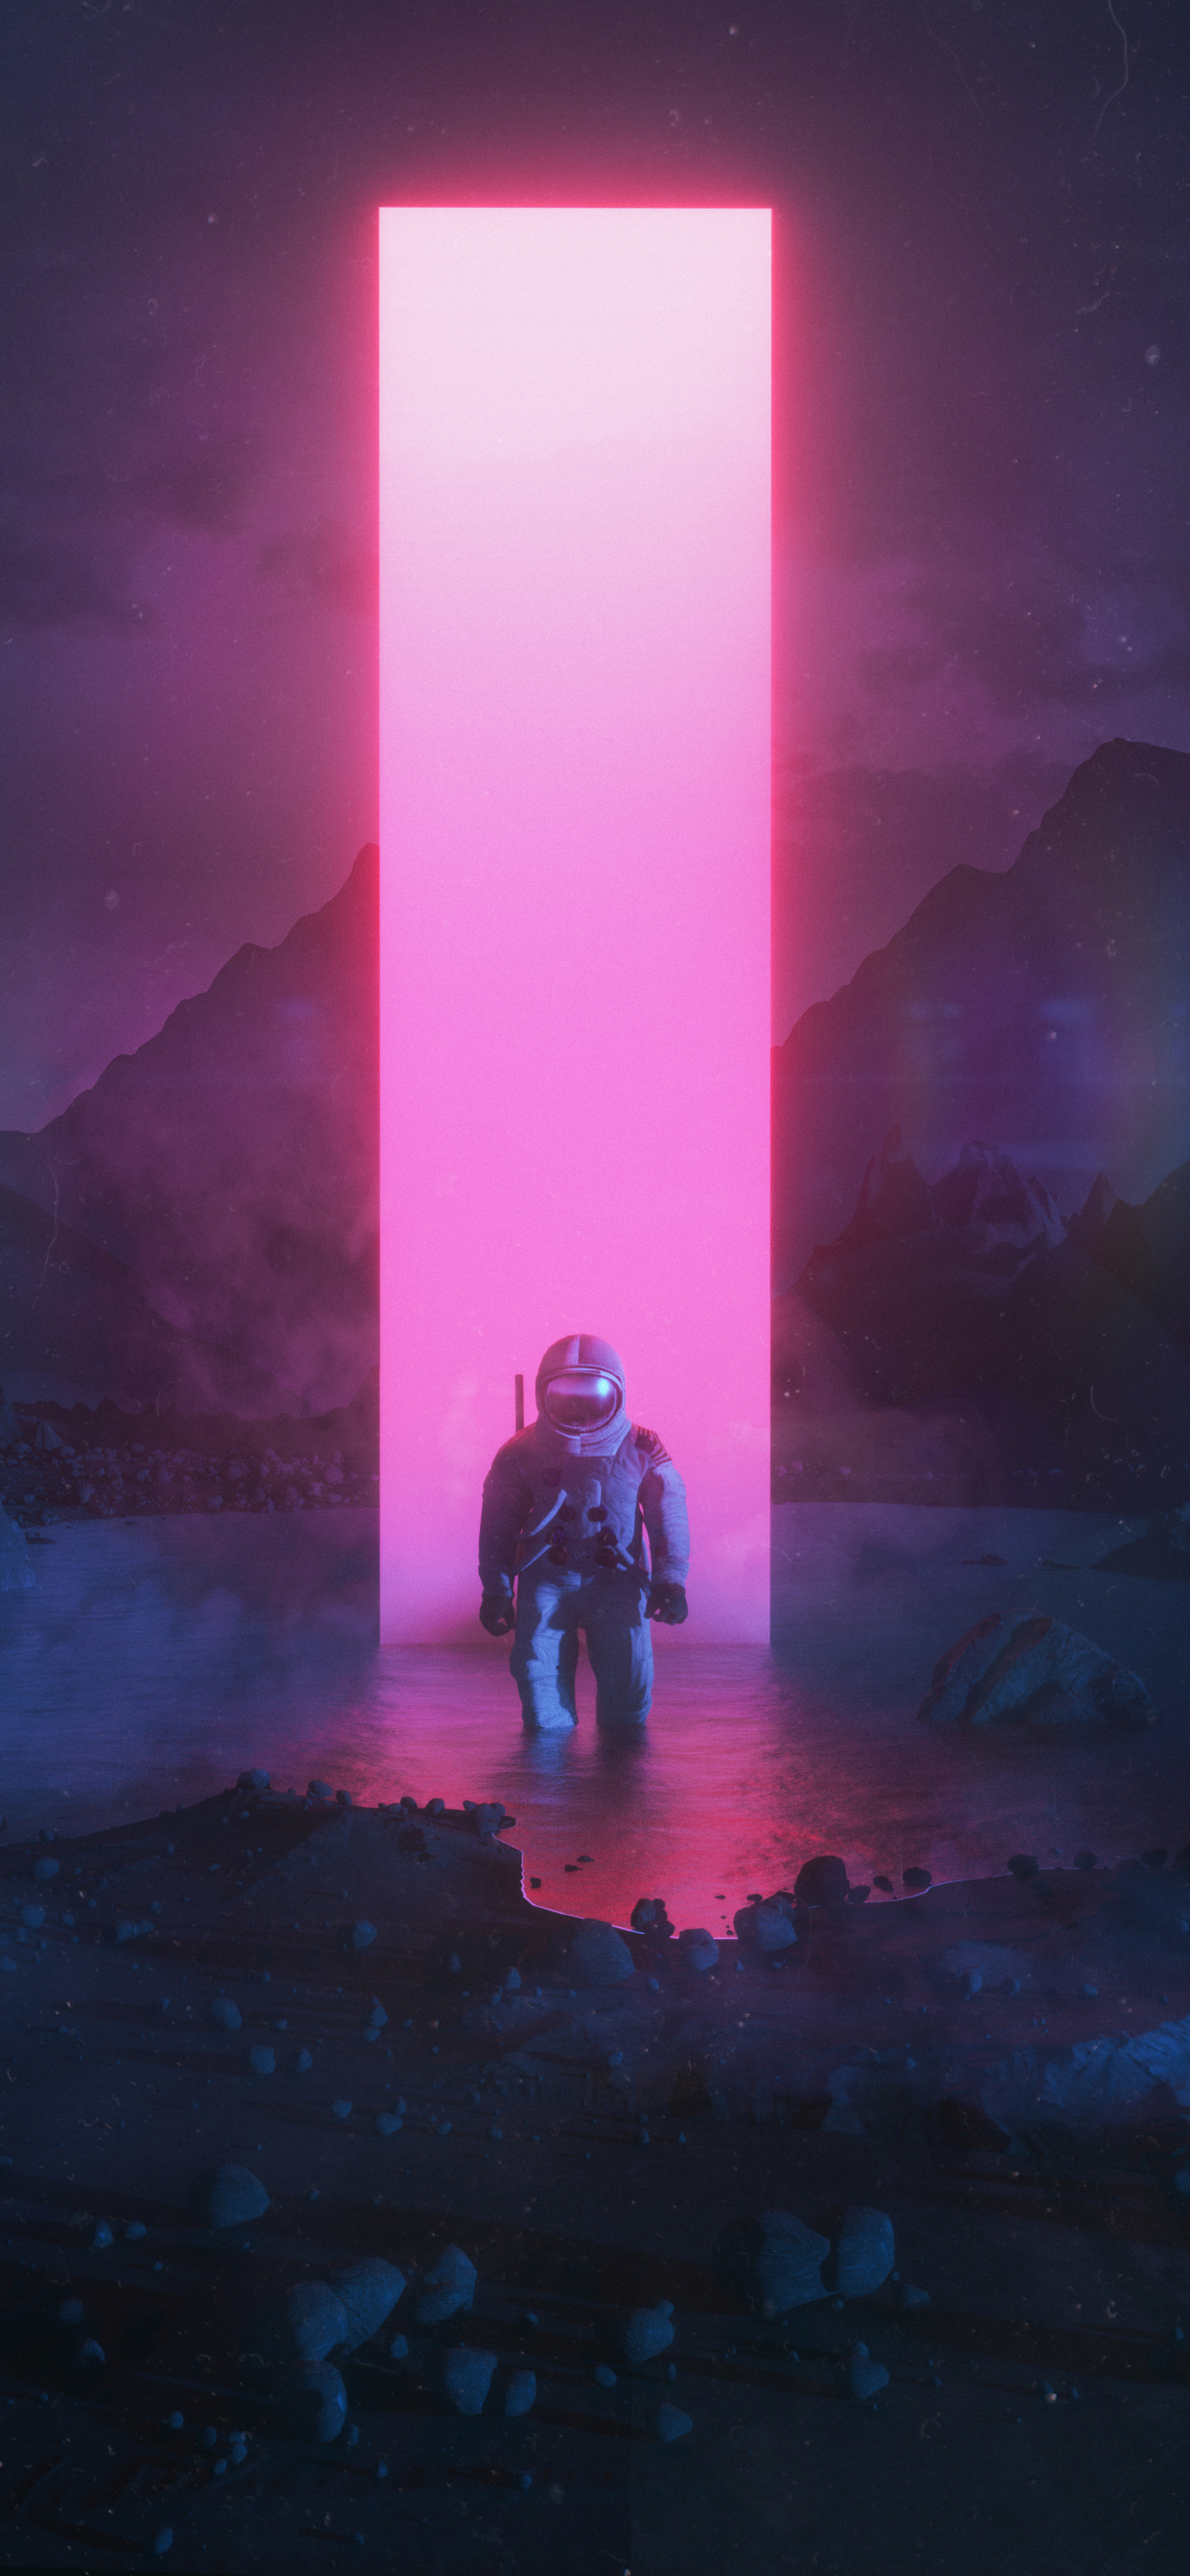 1242x2688 Astronaut Graphic Art Iphone Xs Max Hd 4k